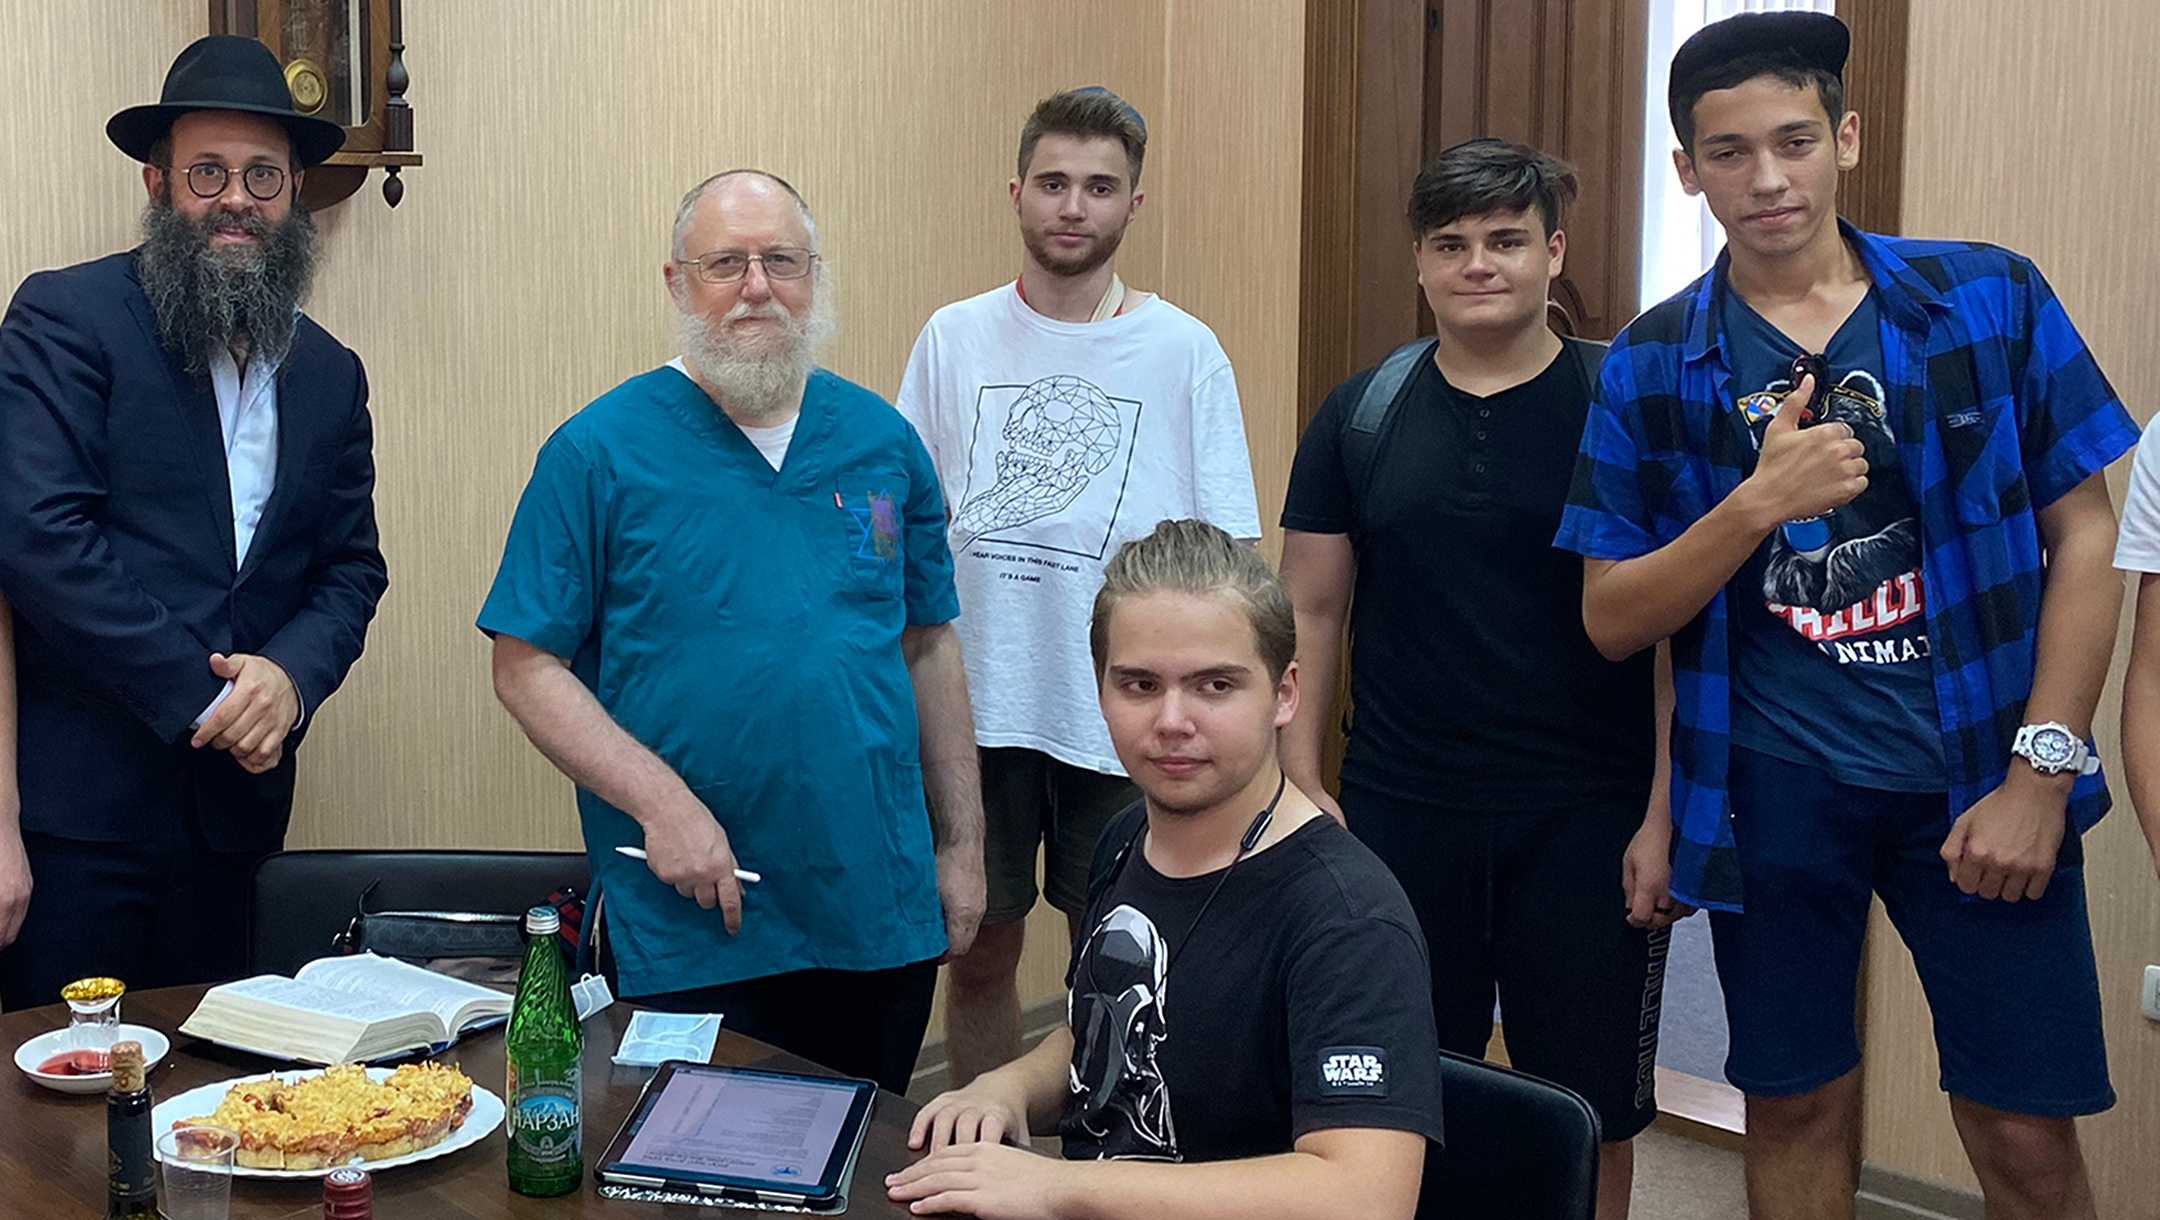 Rabbi Chaim Danzinger, left, introduces Dr. Yeshaya Shafitto younger Jews awaiting circumcision at the synagogue of Rostov-on-Don, Russia on July 27, 2020. (Courtesy of the Jewish Community of Rostov.)